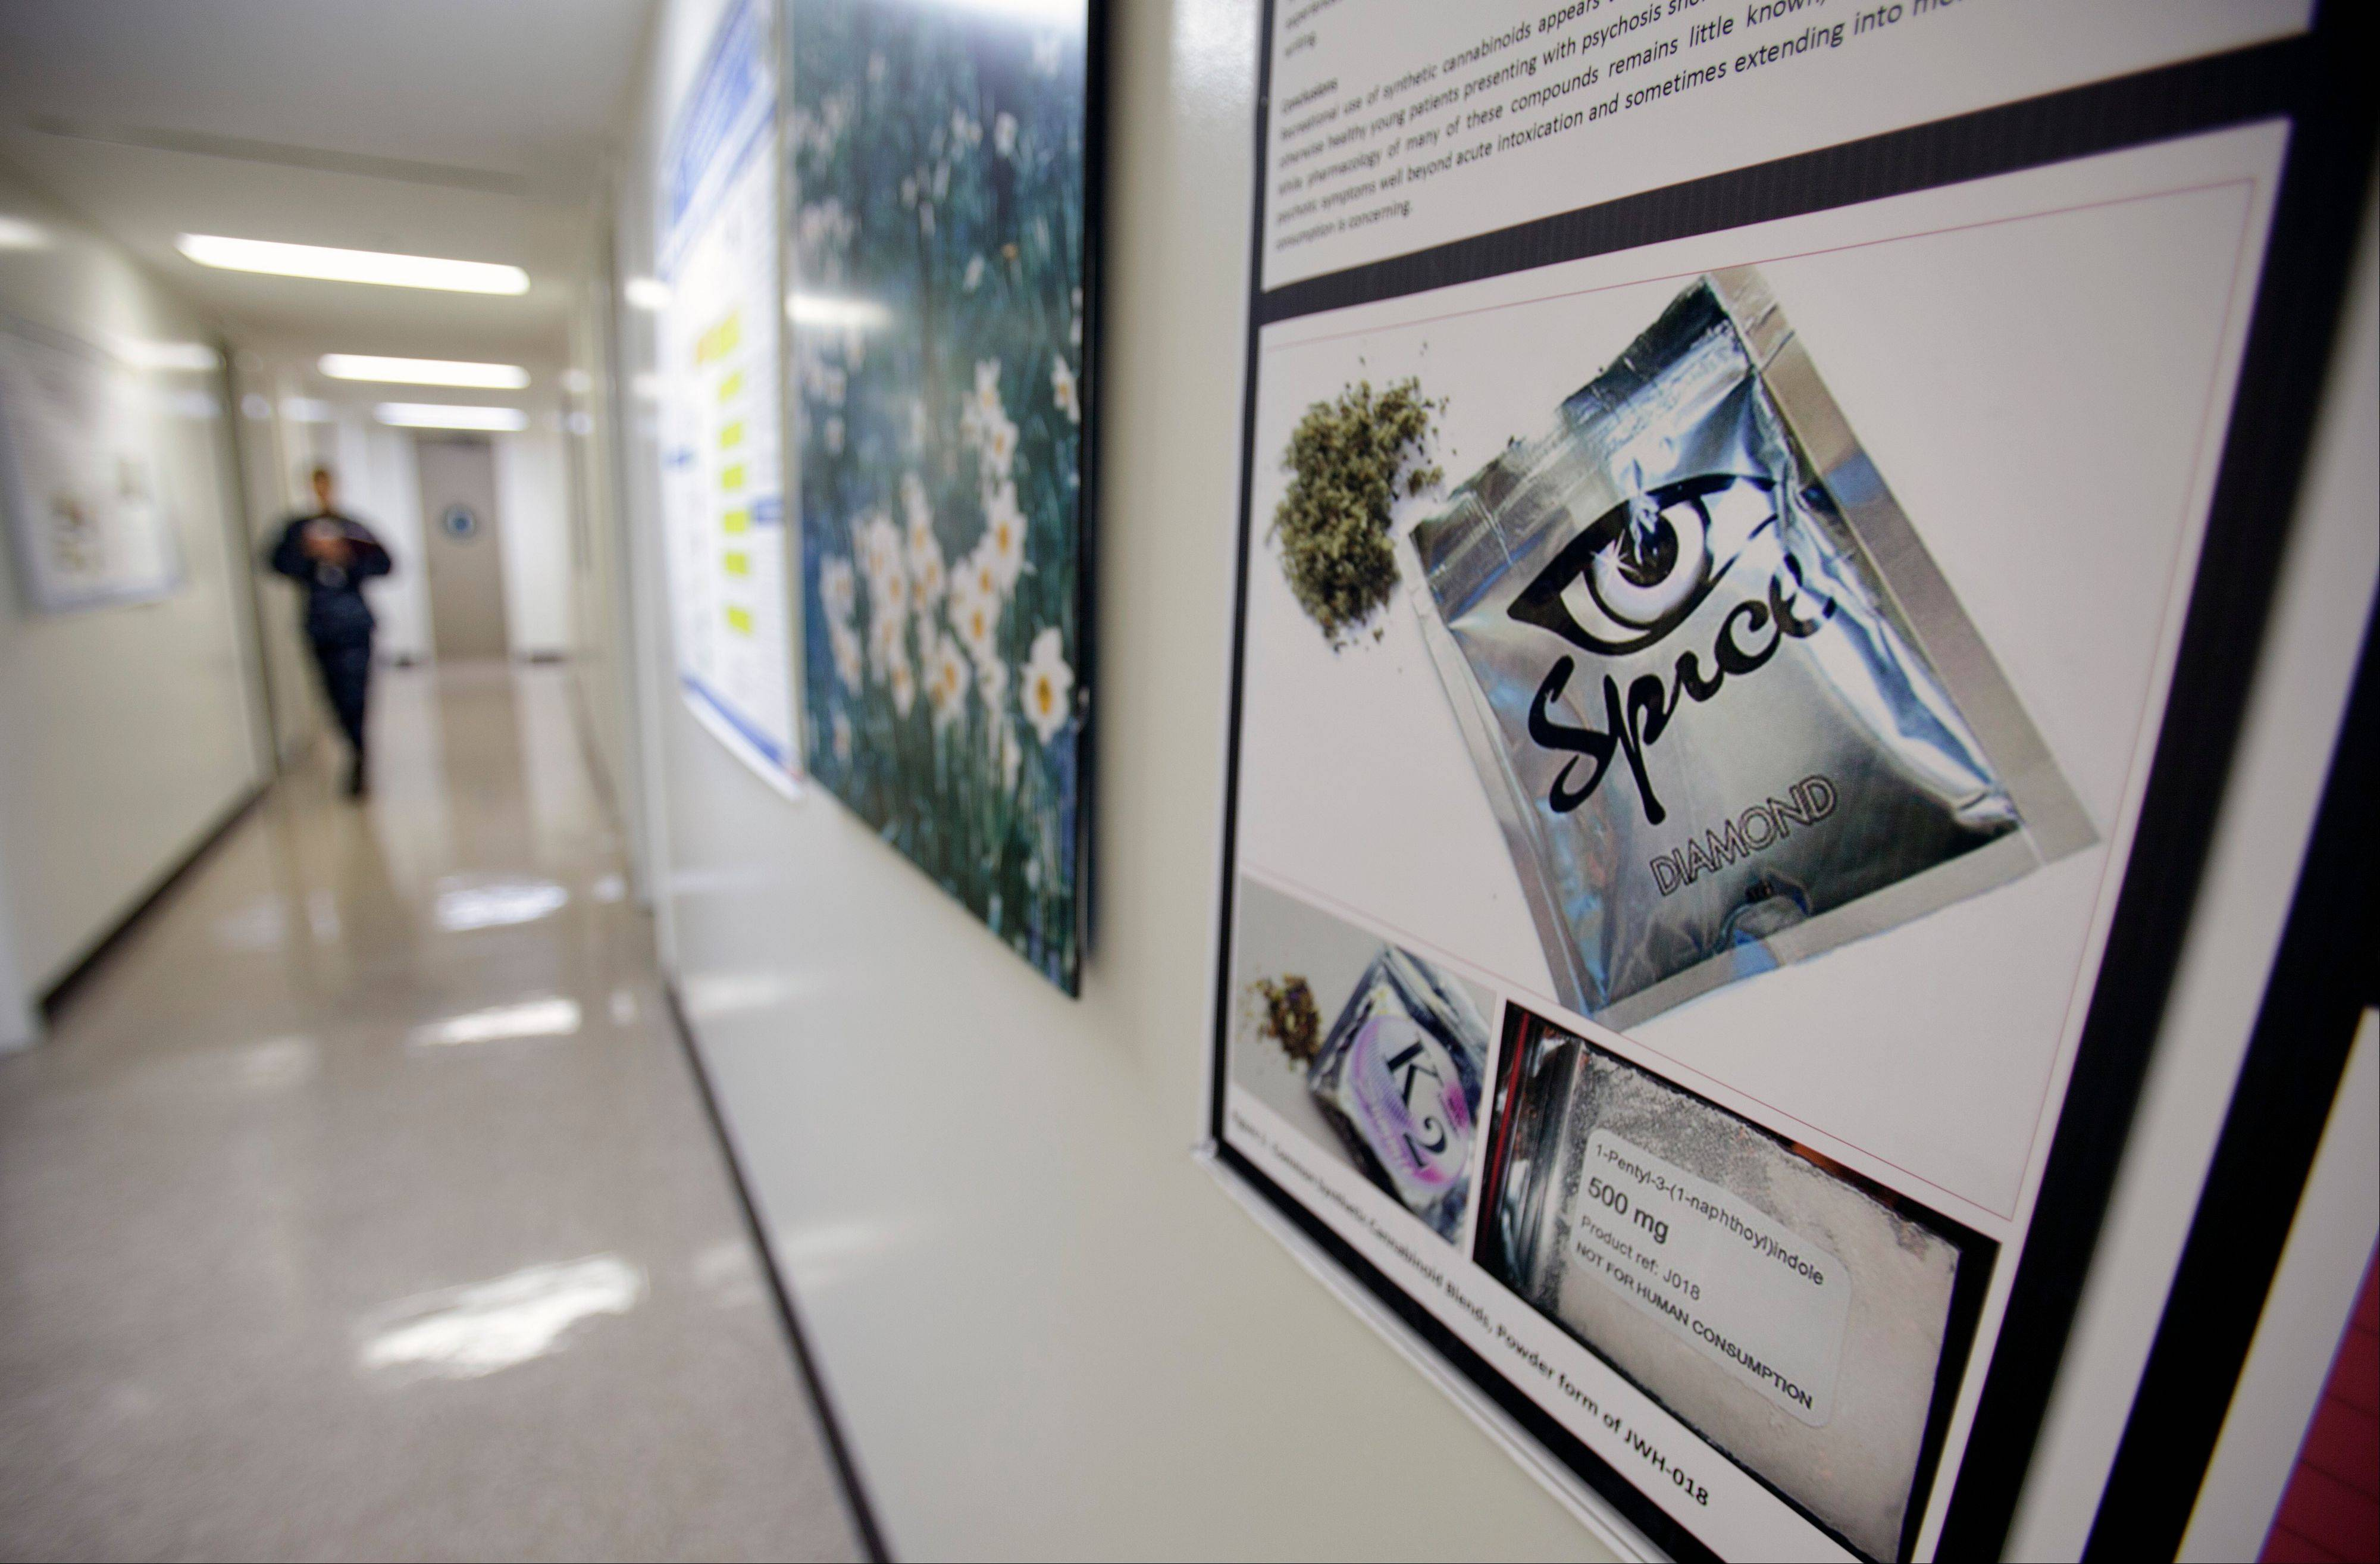 A poster warning of the effects of the drug known as 'spice' hangs on a wall at the Naval Hospital, in San Diego. The U.S. Navy has kicked out a record number of sailors and Marines this year for smoking synthetic marijuana and is seeing a dramatic jump in emergency room visits of its users, including some who babbled or hallucinated for eight days.